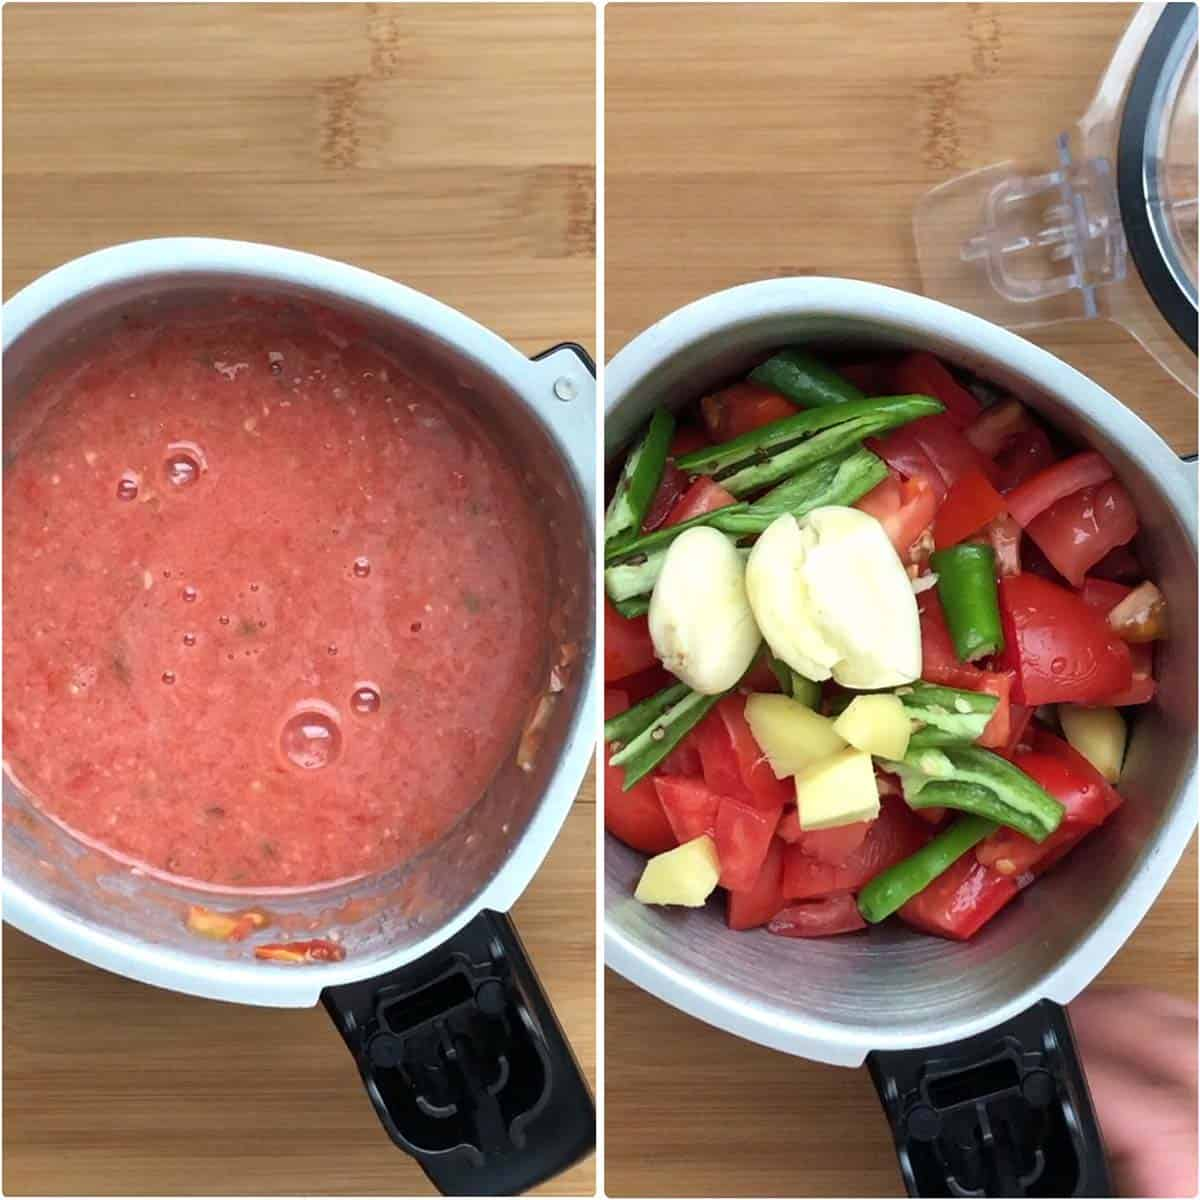 Blending tomatoes with chilies, ginger and garlic